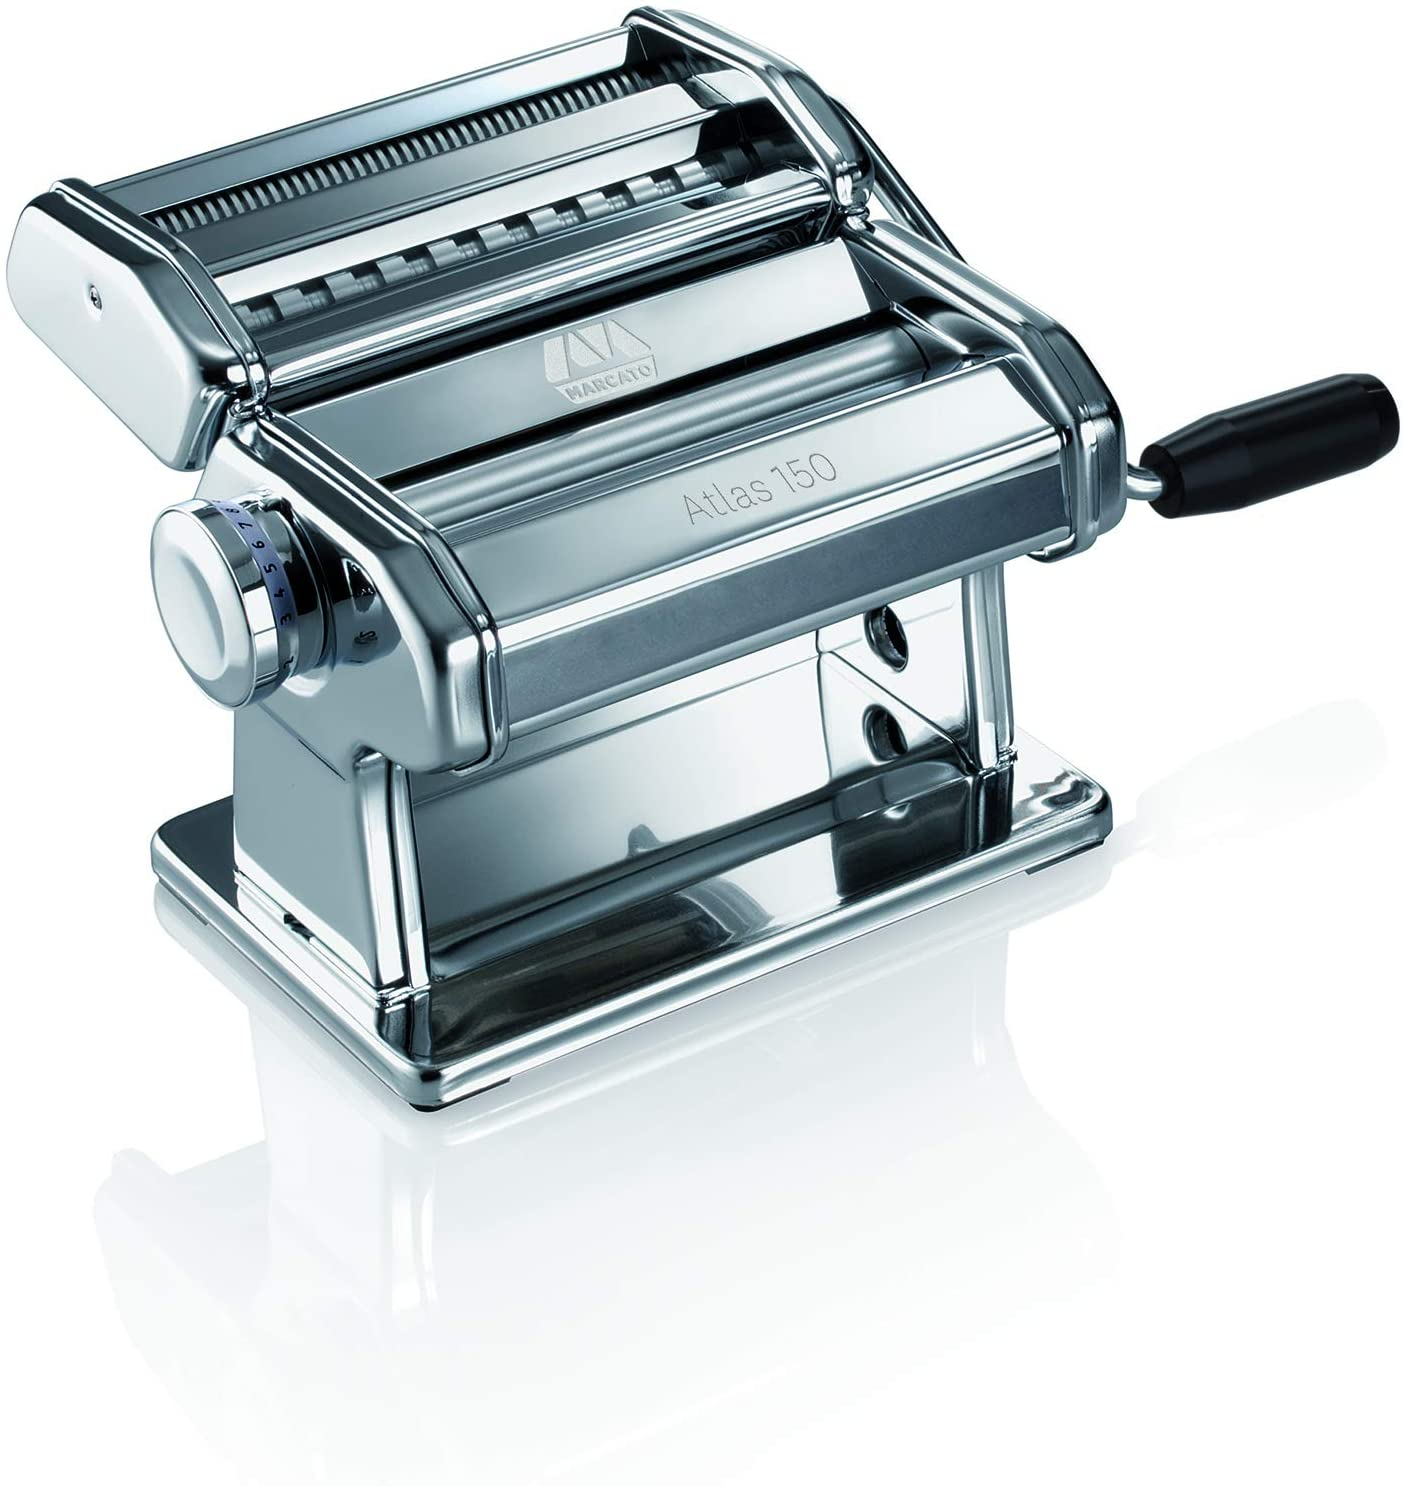 Pasta Machine for Crafts